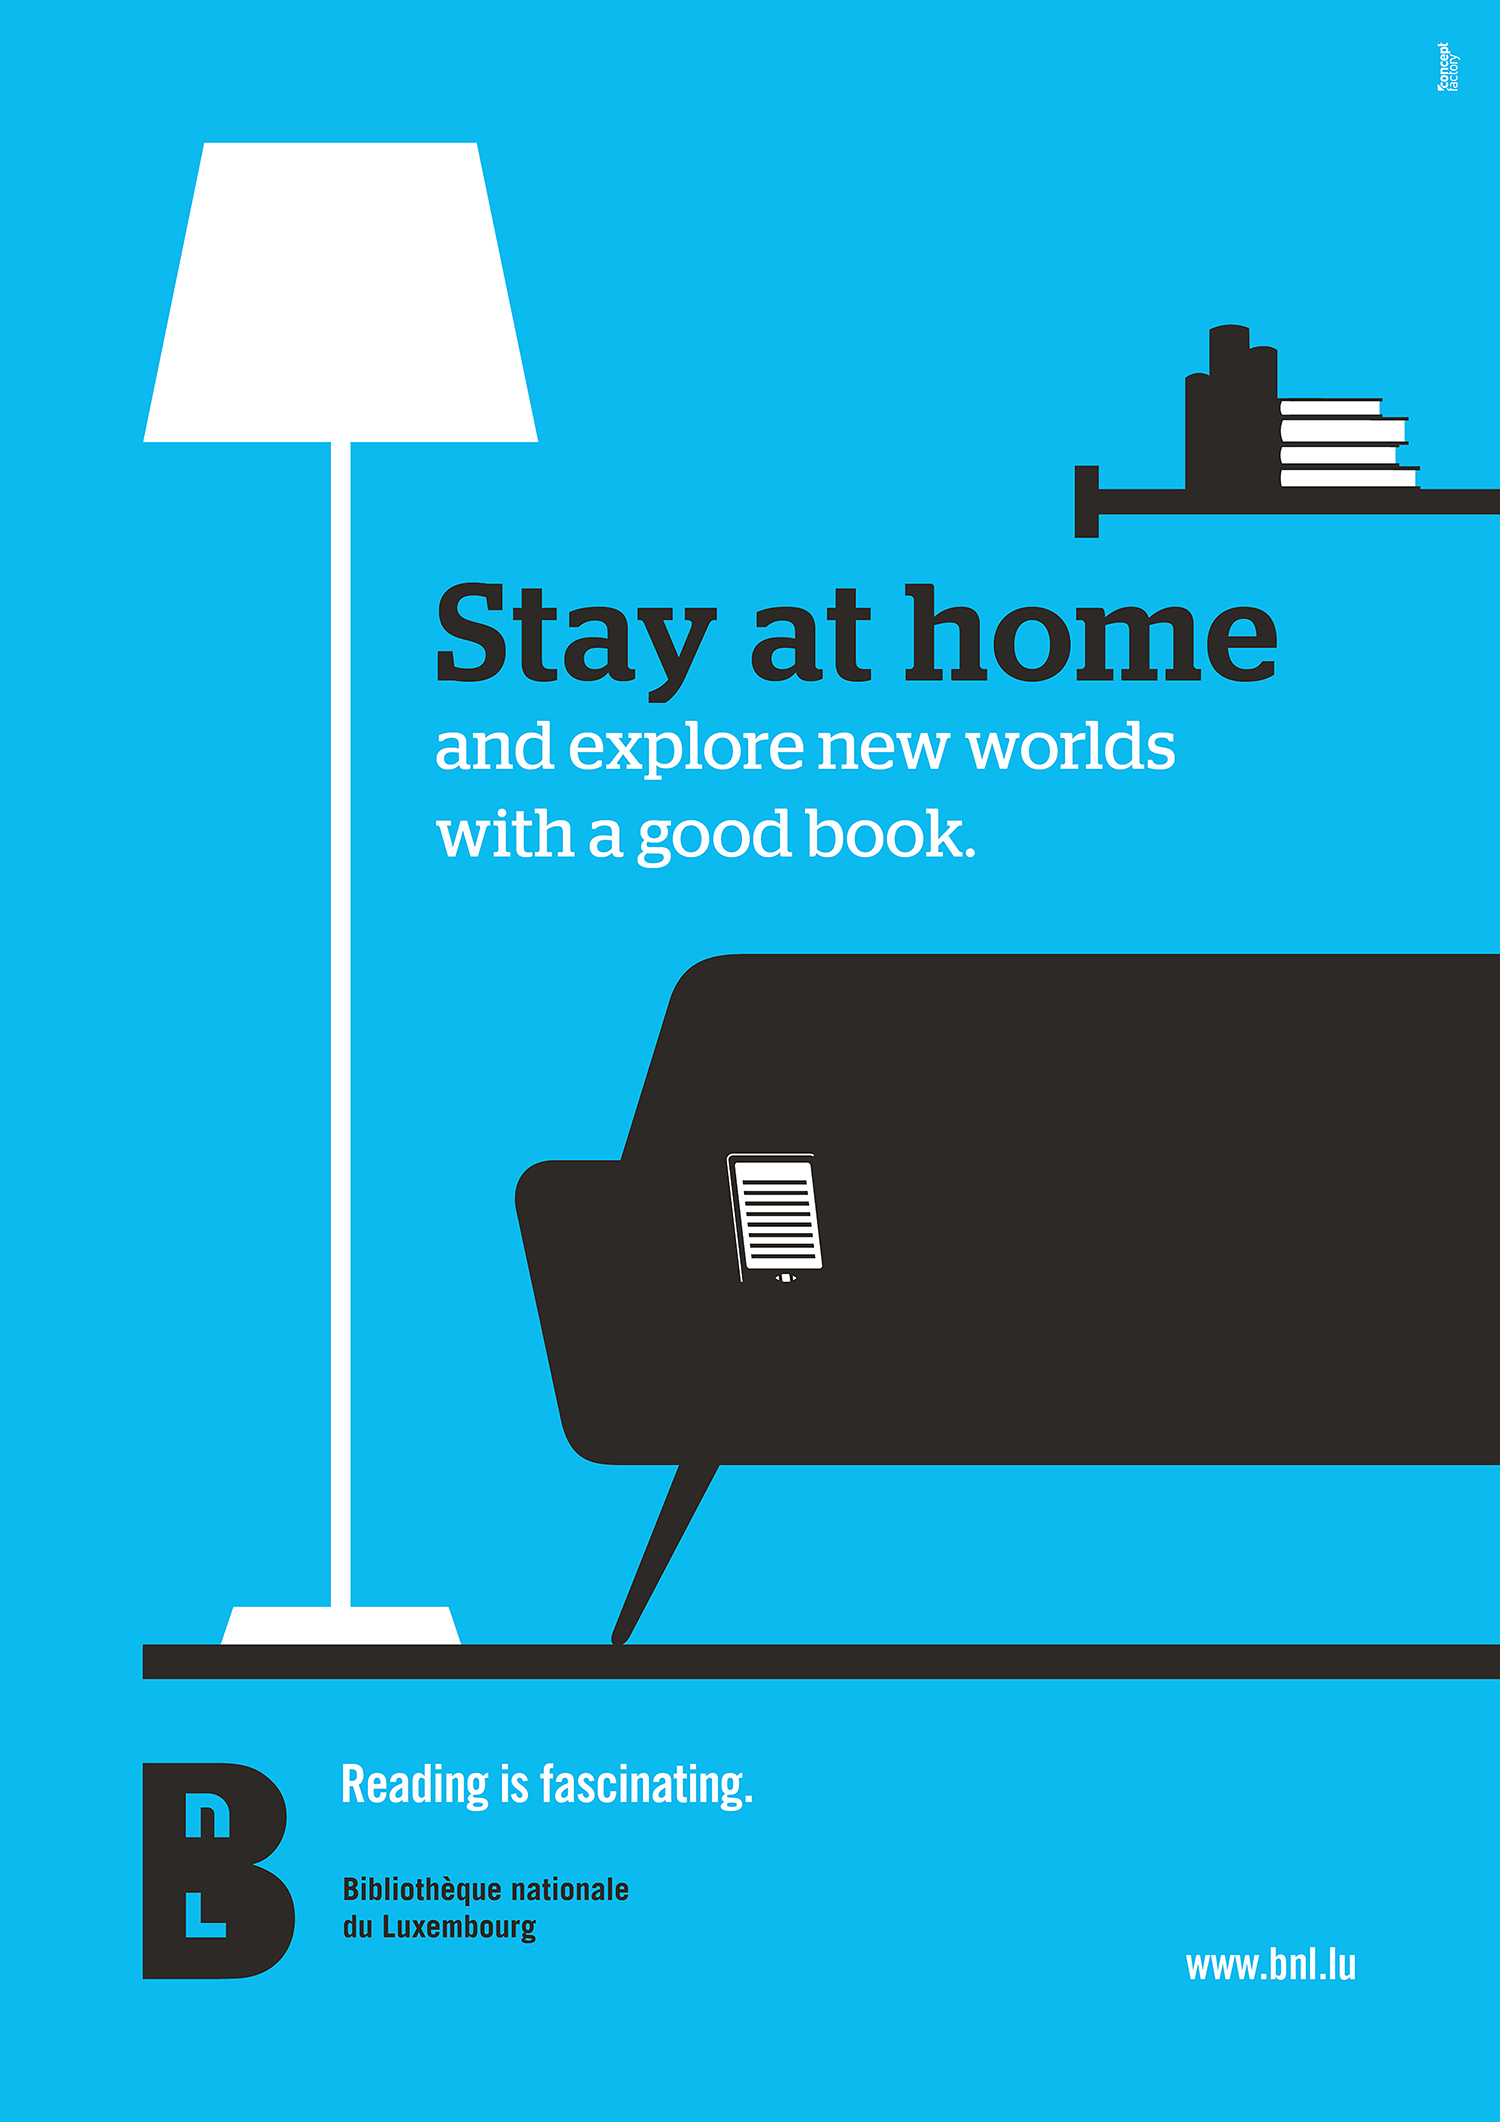 Reading Tips during Covid